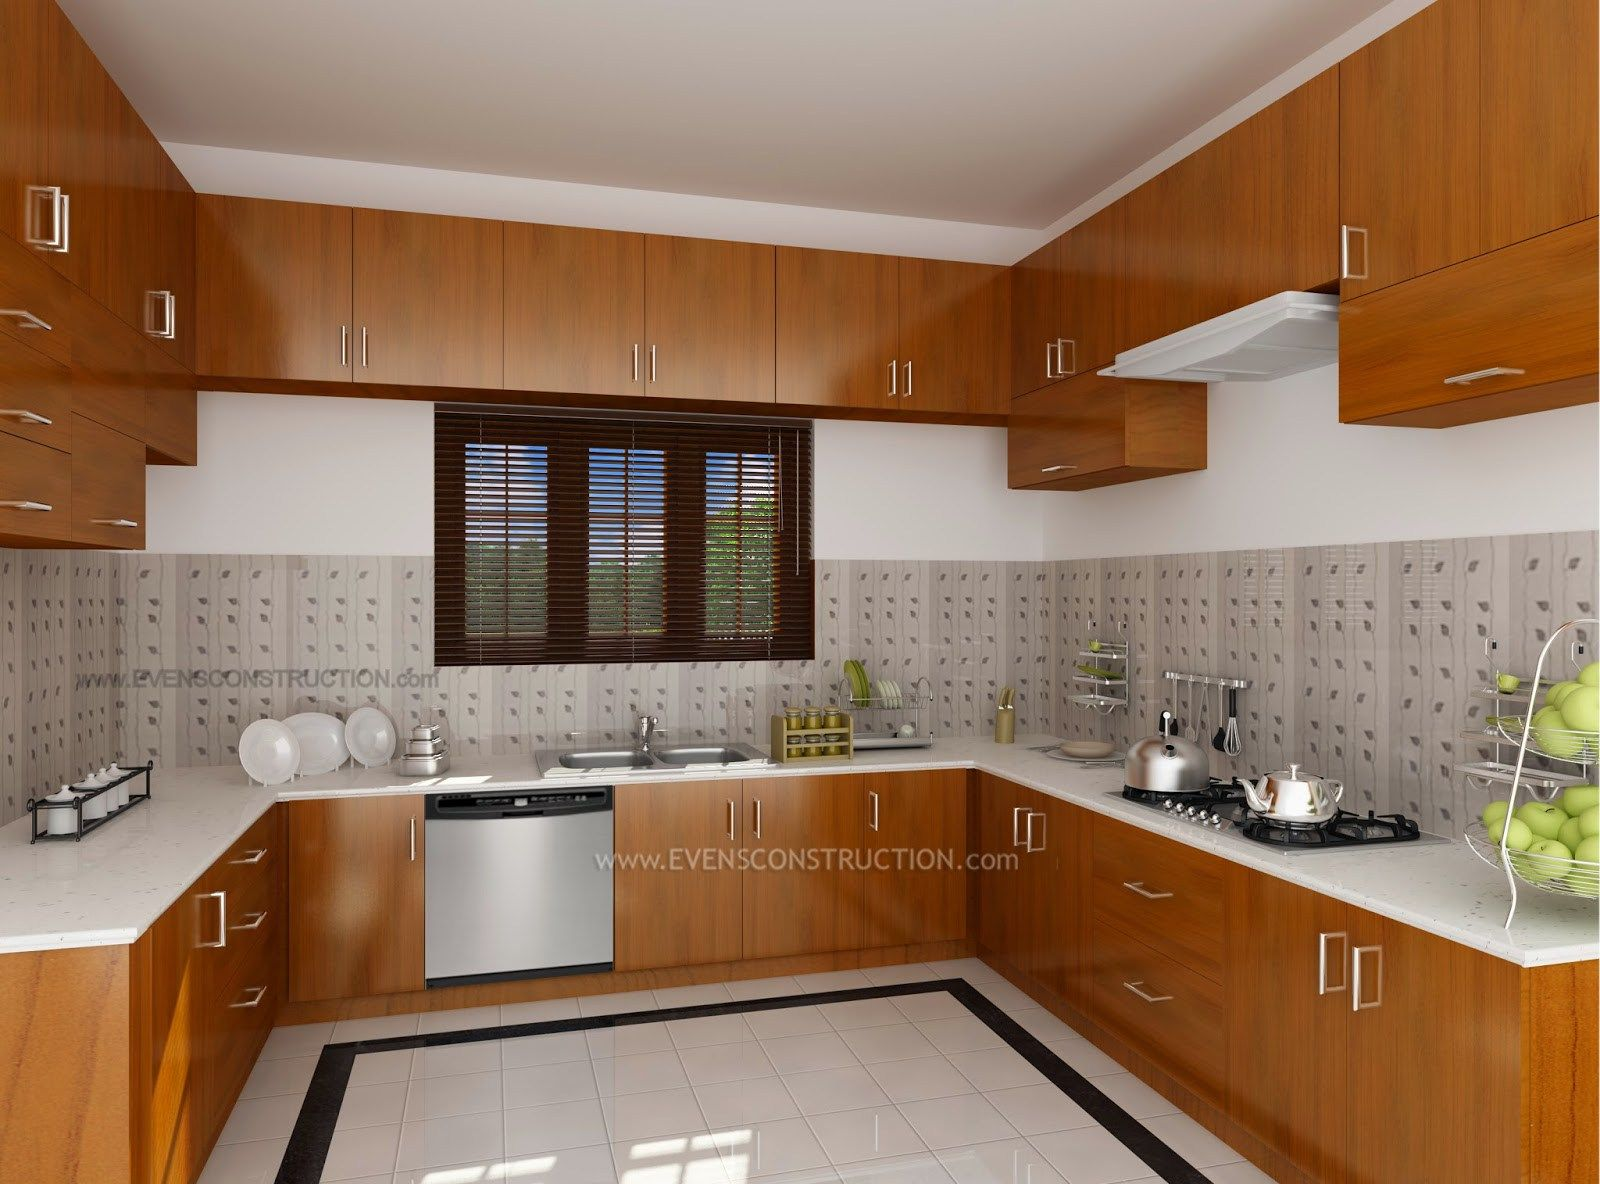 Design interior kitchen home kerala modern house kitchen for Home kitchen ideas